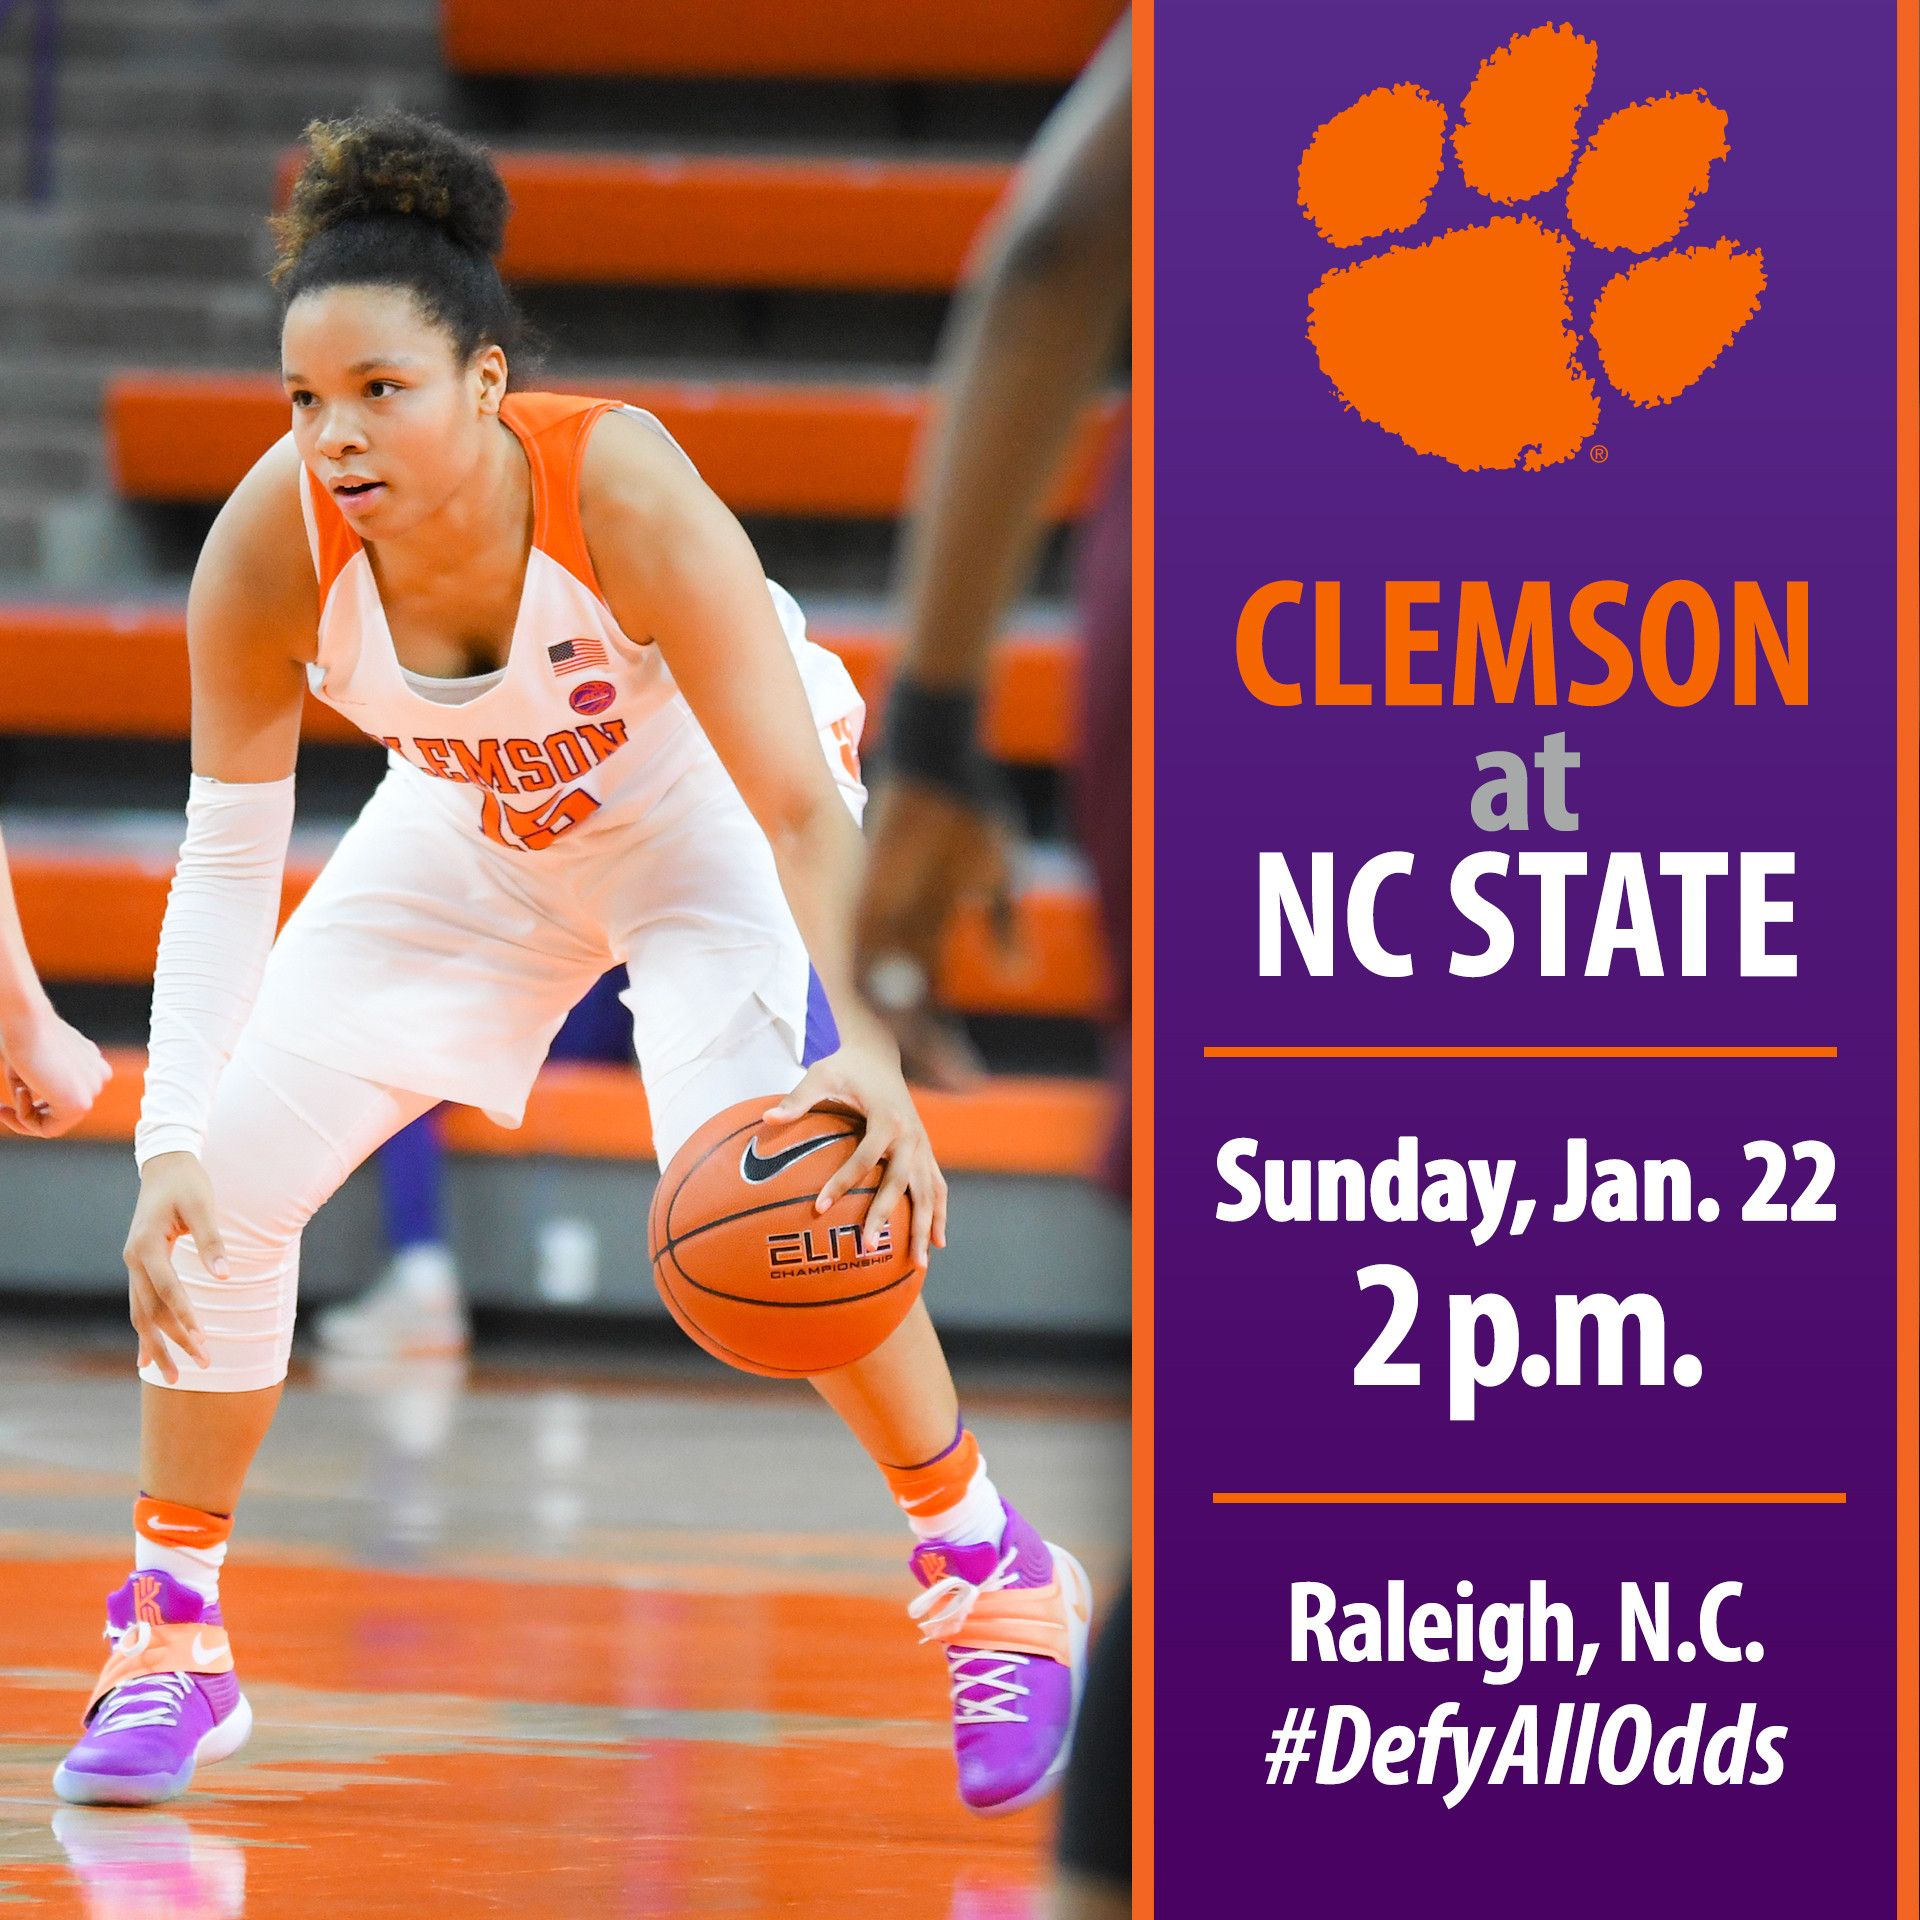 Clemson Travels to Raleigh to Face No. 21/21 NC State Sunday